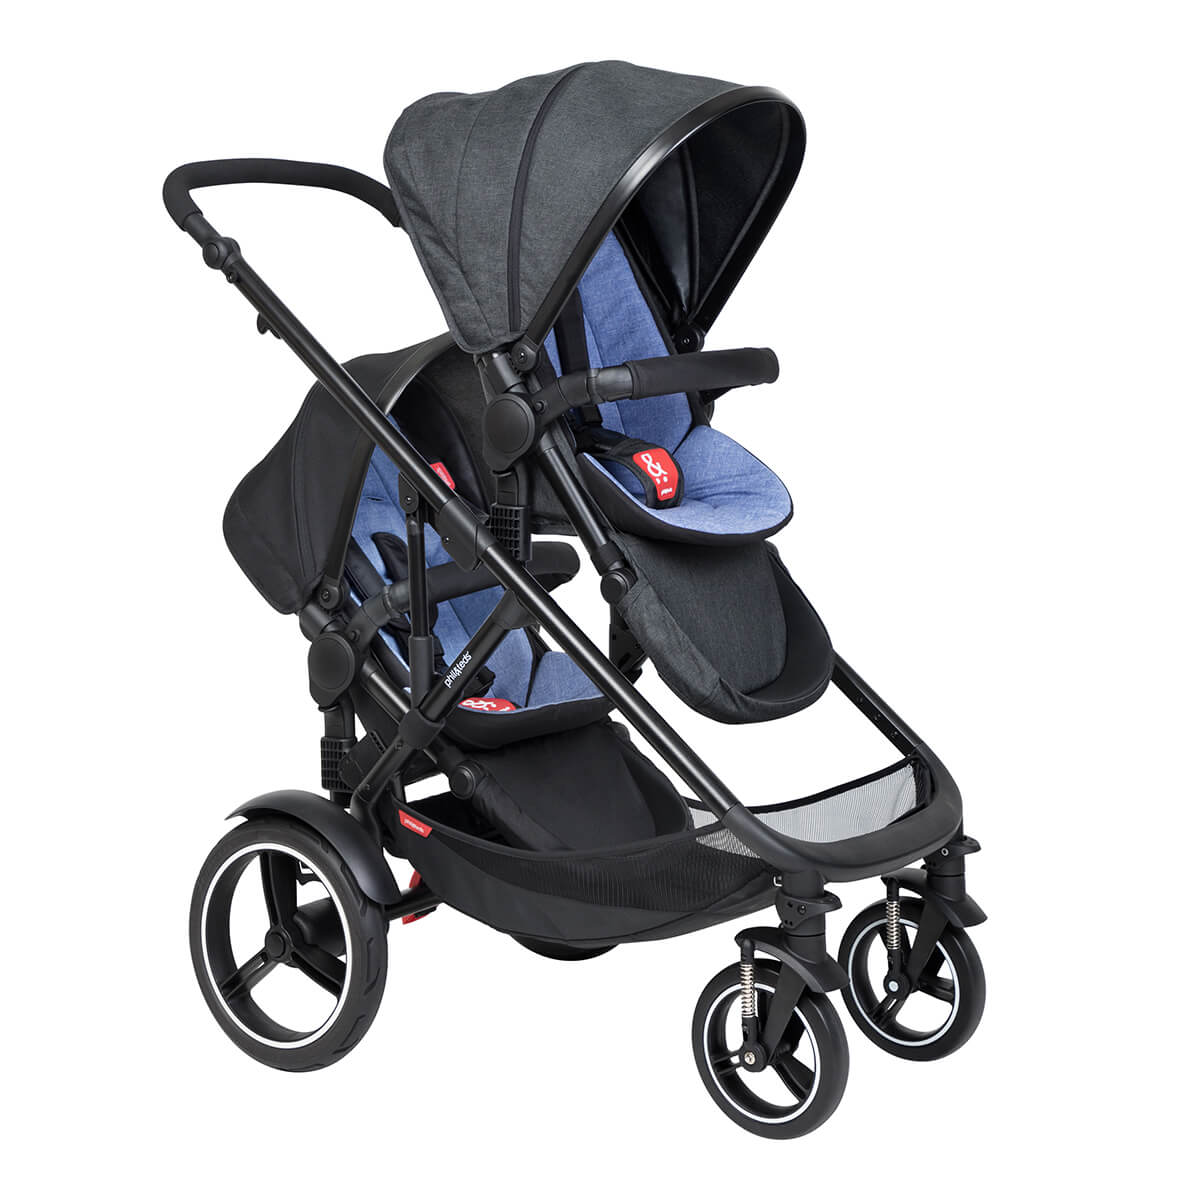 https://cdn.accentuate.io/4509529309272/19272668348504/philteds-voyager-inline-buggy-with-double-kit-in-rear-in-sky-blue-colour-v1626484659460.jpg?1200x1200